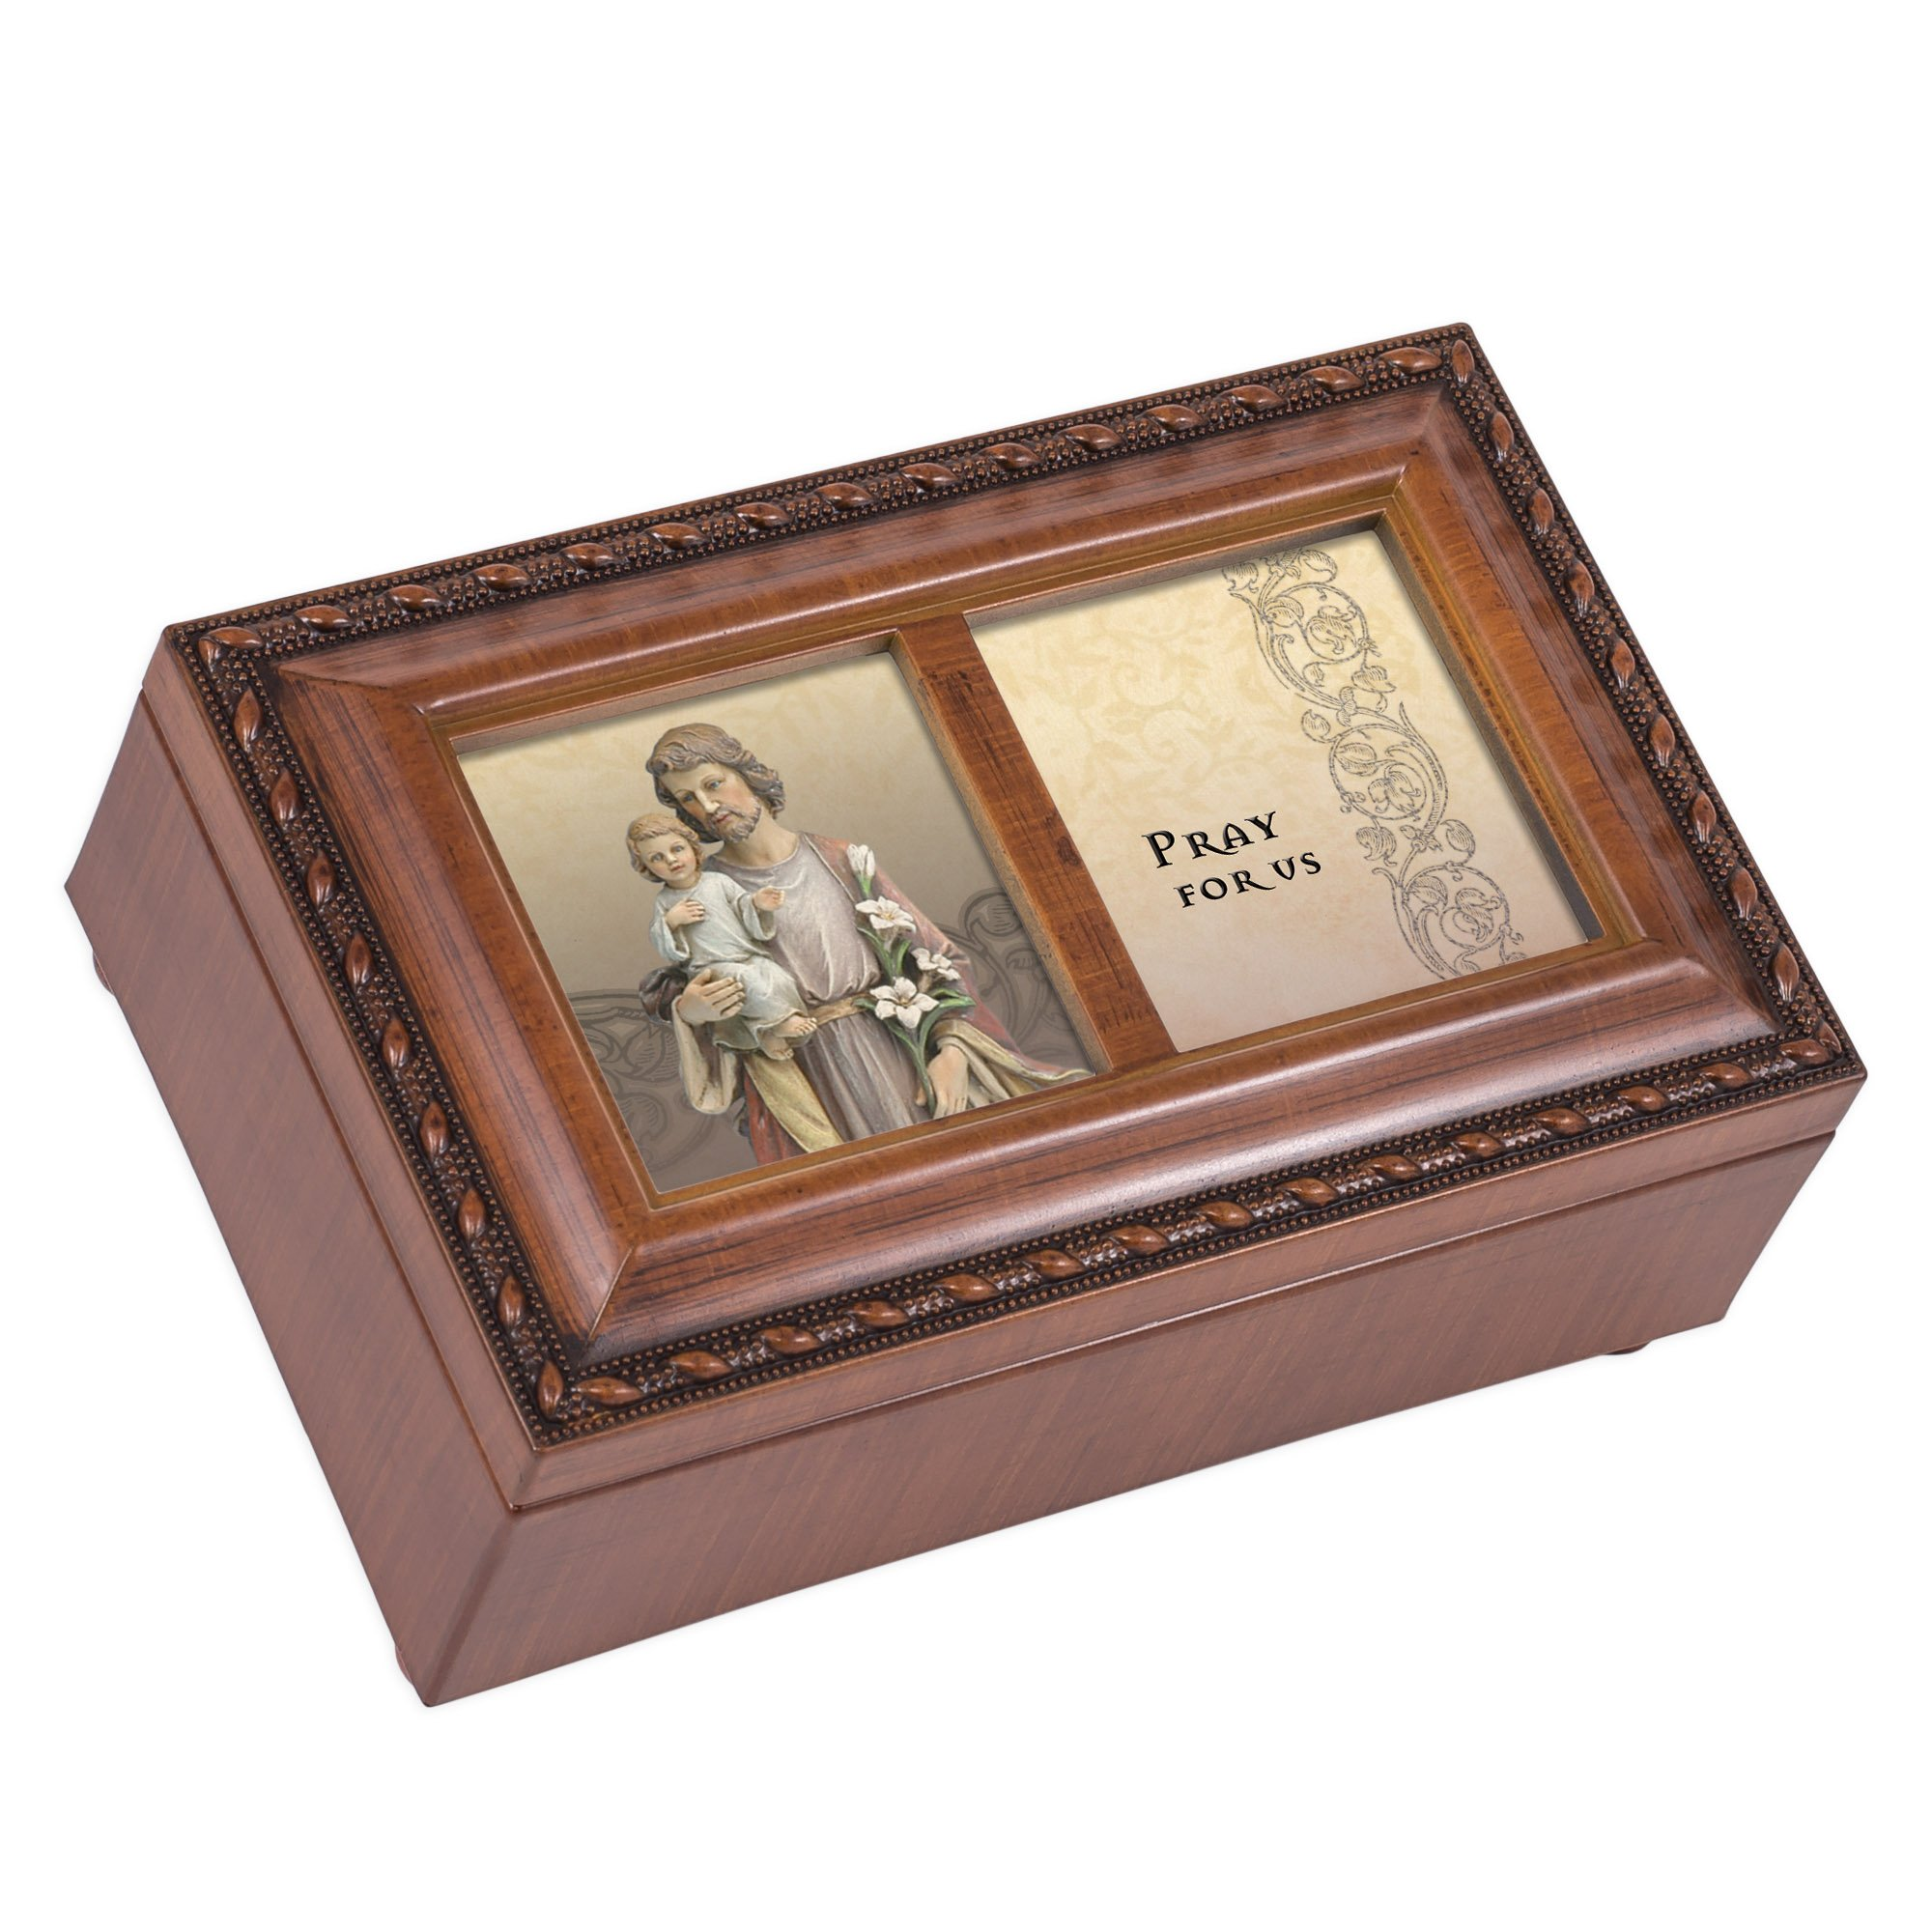 Cottage Garden St. Jospeh Wood Finish Small Jewelry Music Box Plays We Have a Friend in Jesus